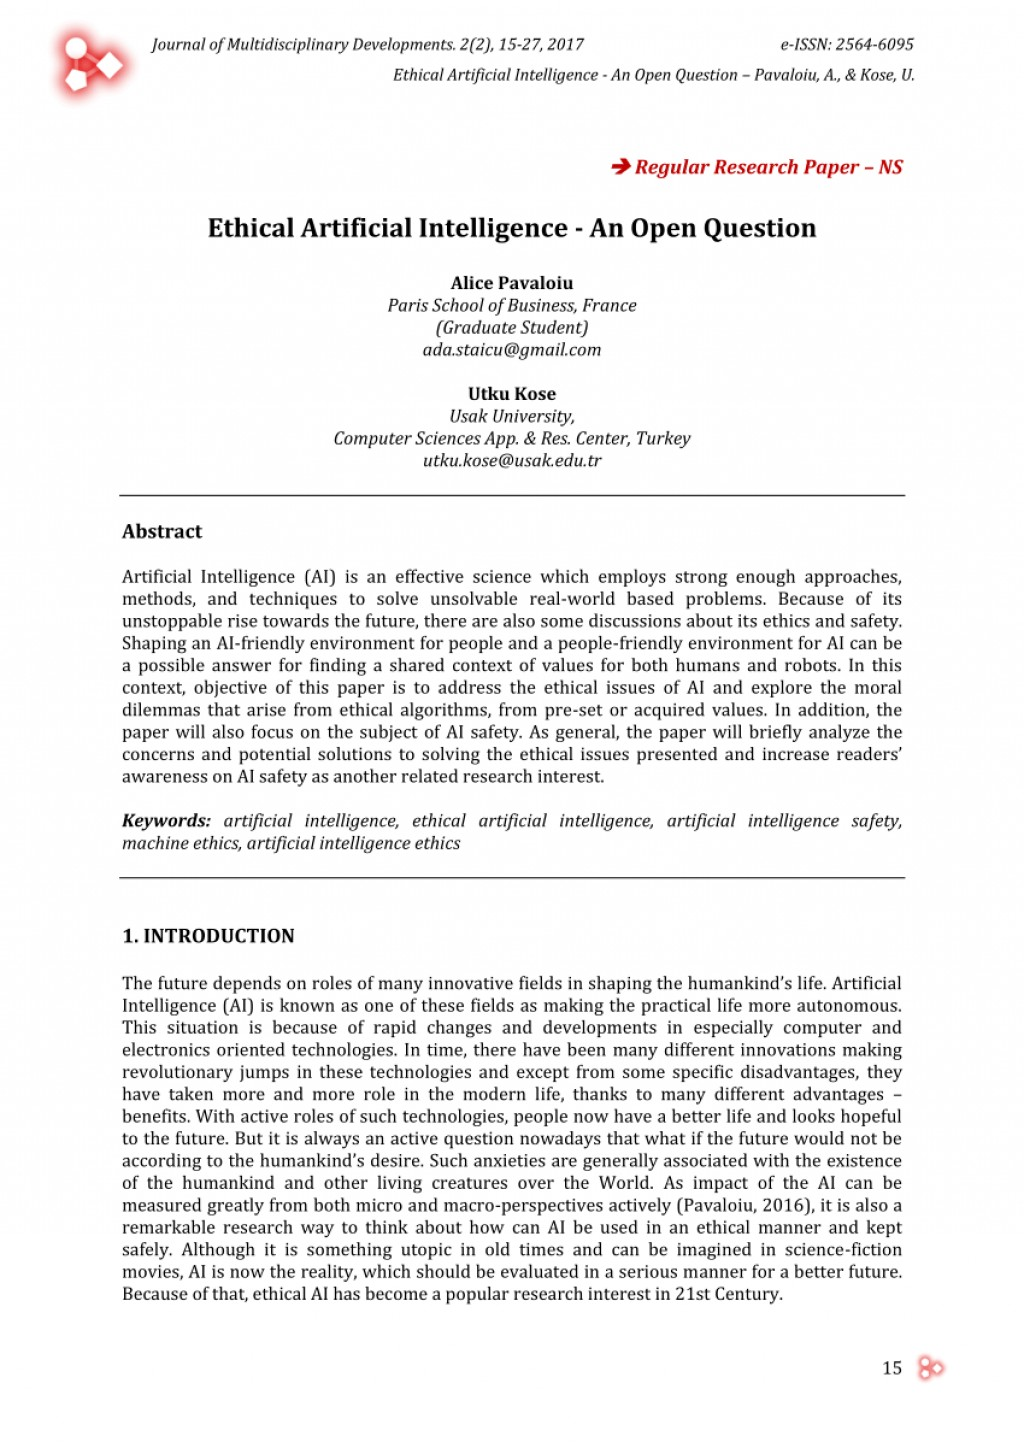 005 Largepreview Artificial Intelligence Research Paper Sensational 2017 Pdf Large